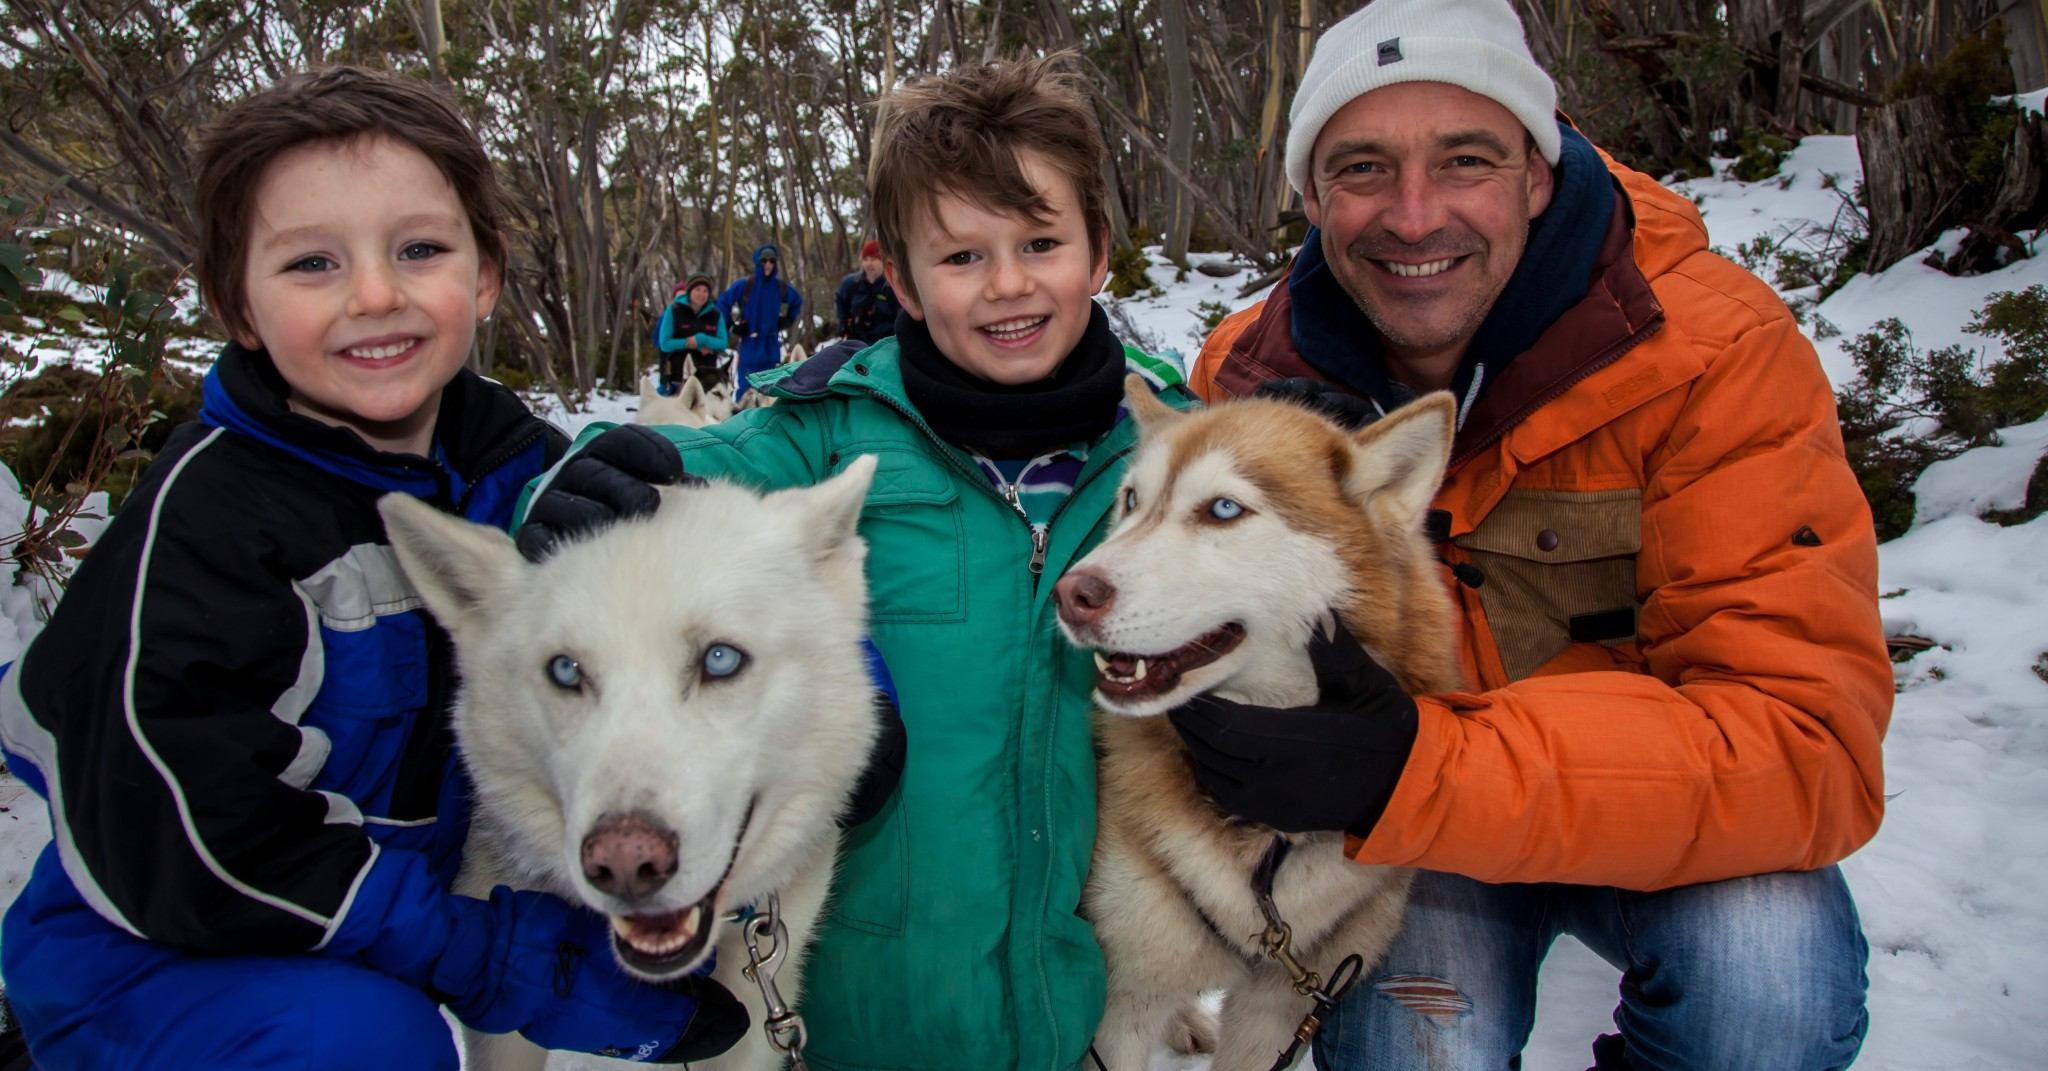 Top three things to visit or do in Gippsland with kids